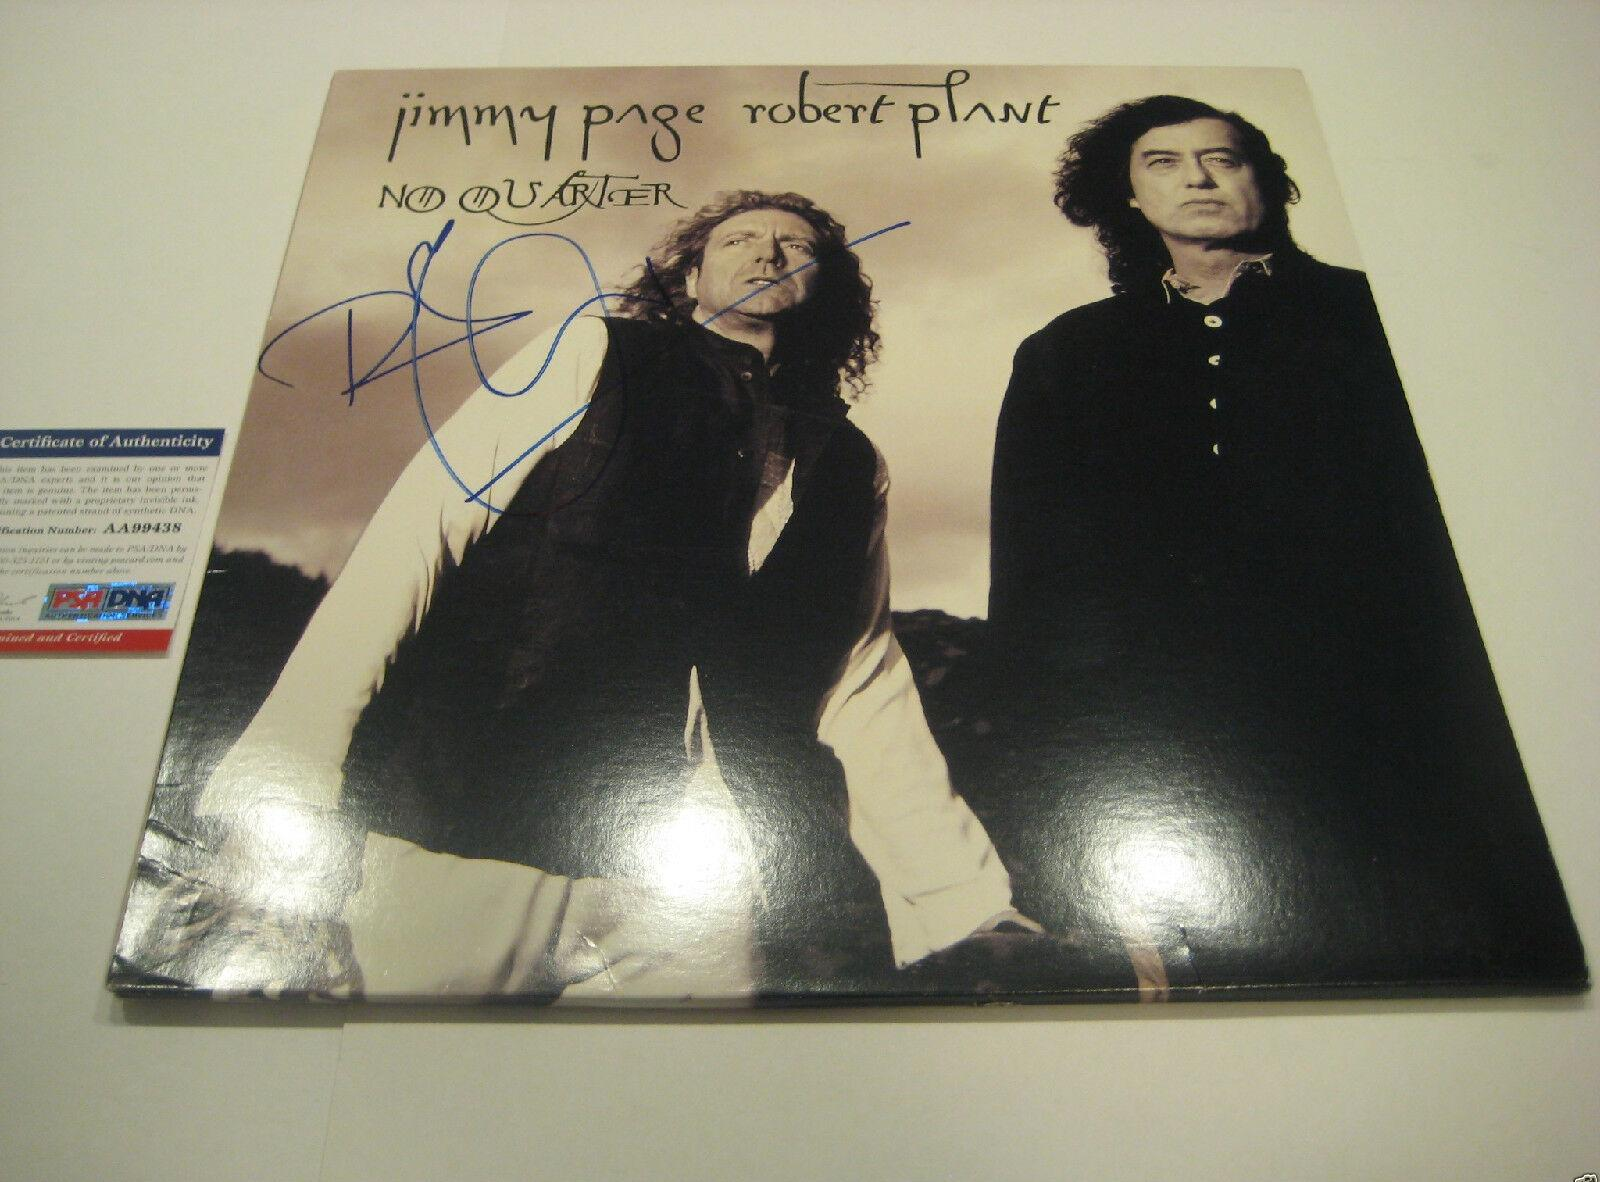 ROBERT PLANT Signed NO QUARTER Album w/ PSA COA